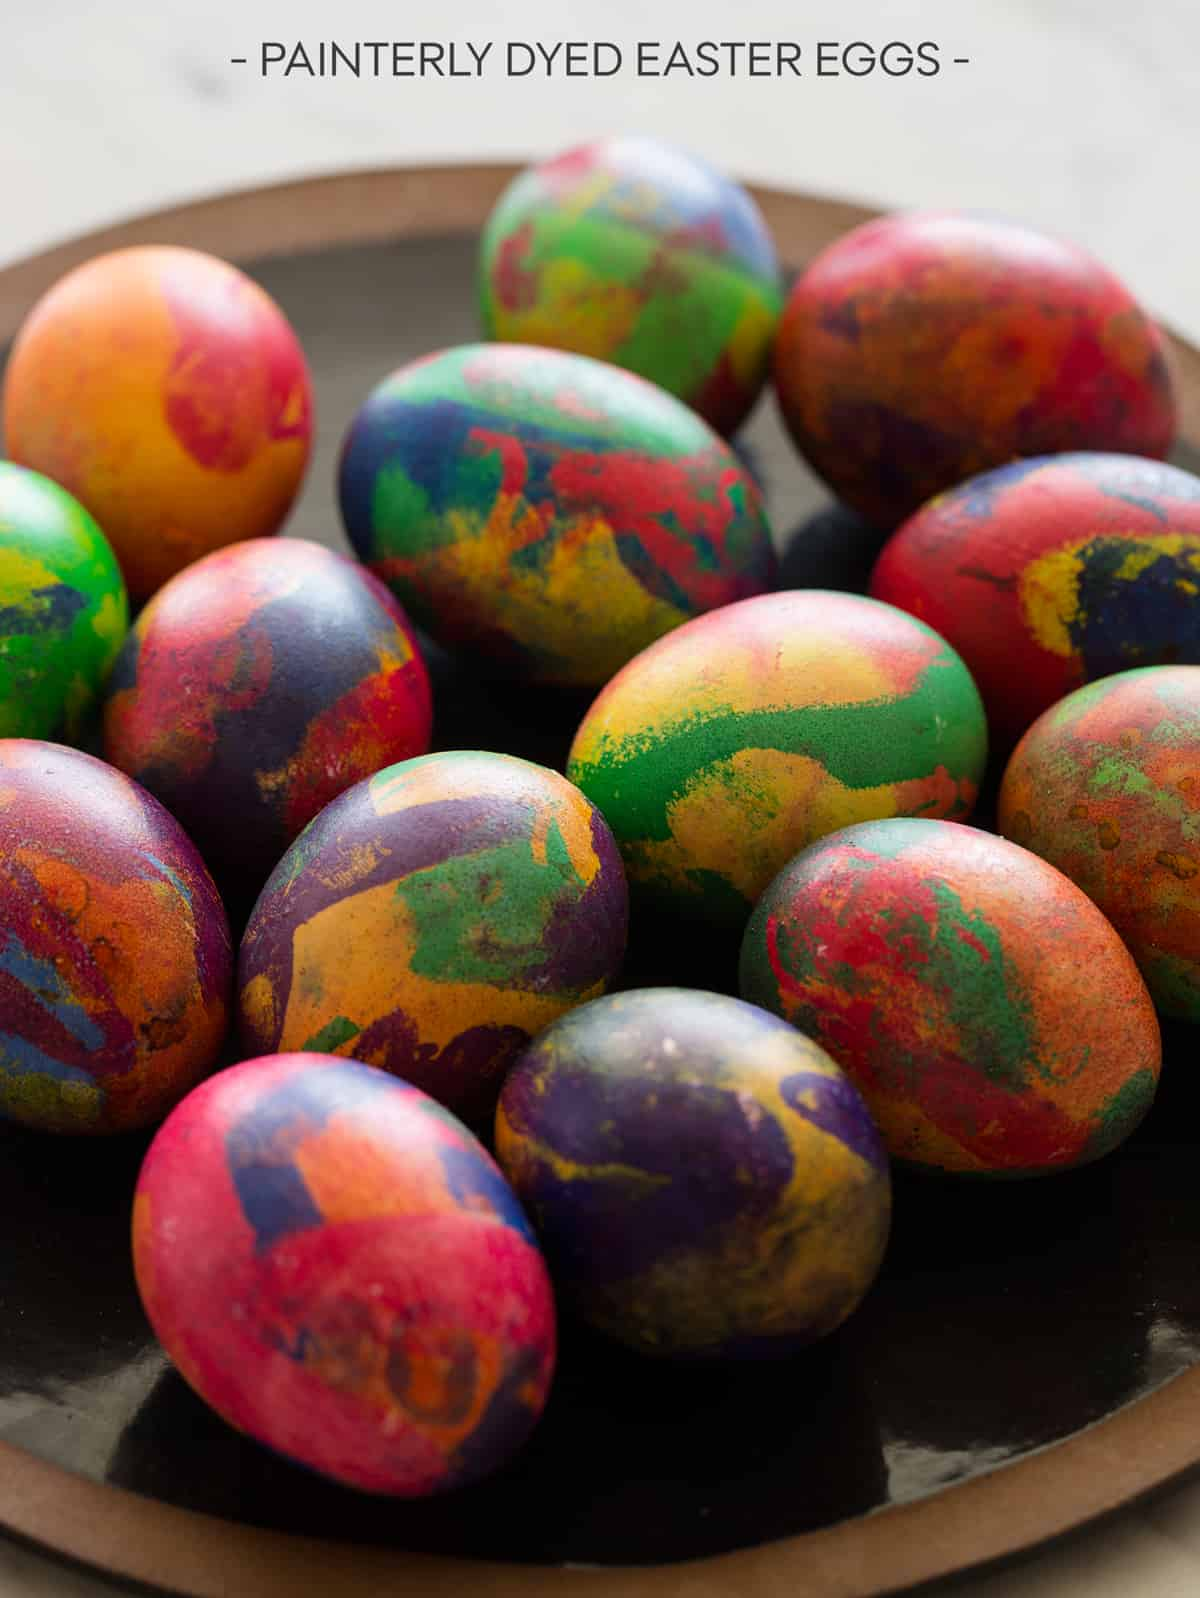 Painterly Dyed Easter Eggs | Spoon Fork Bacon